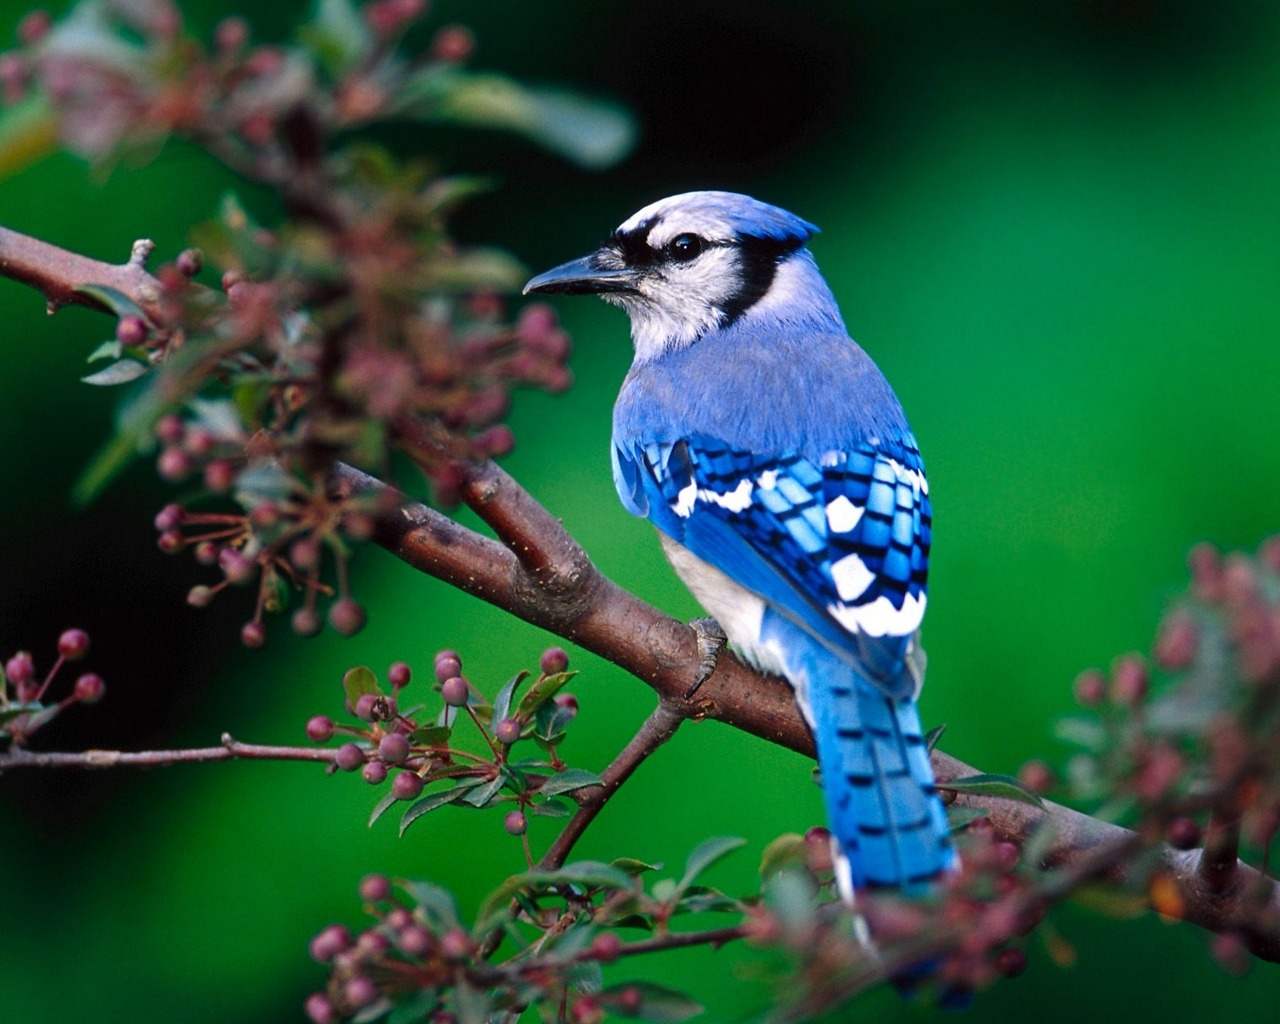 http://2.bp.blogspot.com/-xm_BviRz9Js/T7ioBlkGUqI/AAAAAAAAIWk/FAtINl0pJfs/s1600/Beautiful+Birds+Wallpapers+12.jpg